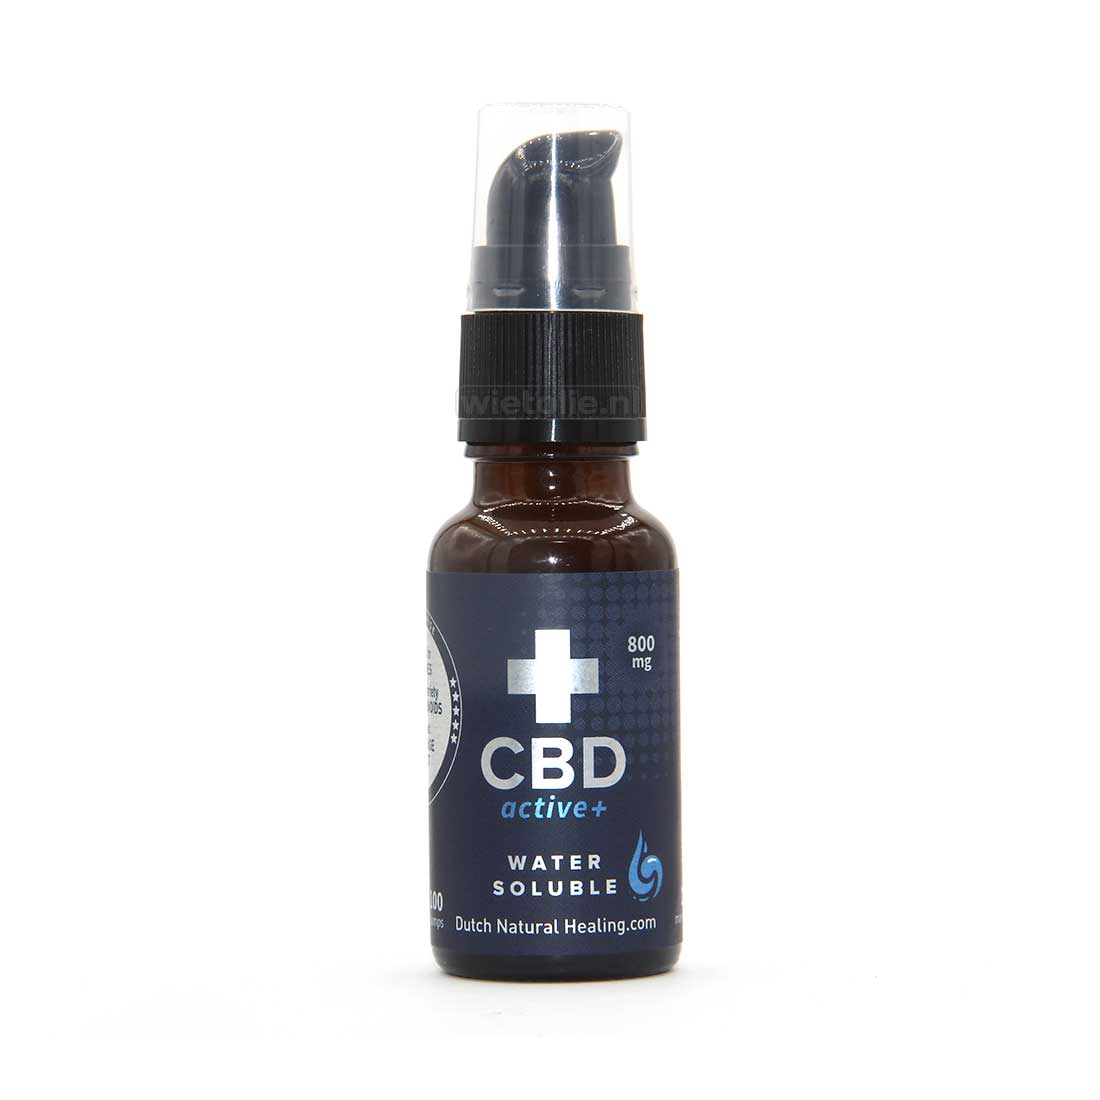 CBD (wateroplosbaar) DNH Active+ – 20 Ml (800 Mg CBD)